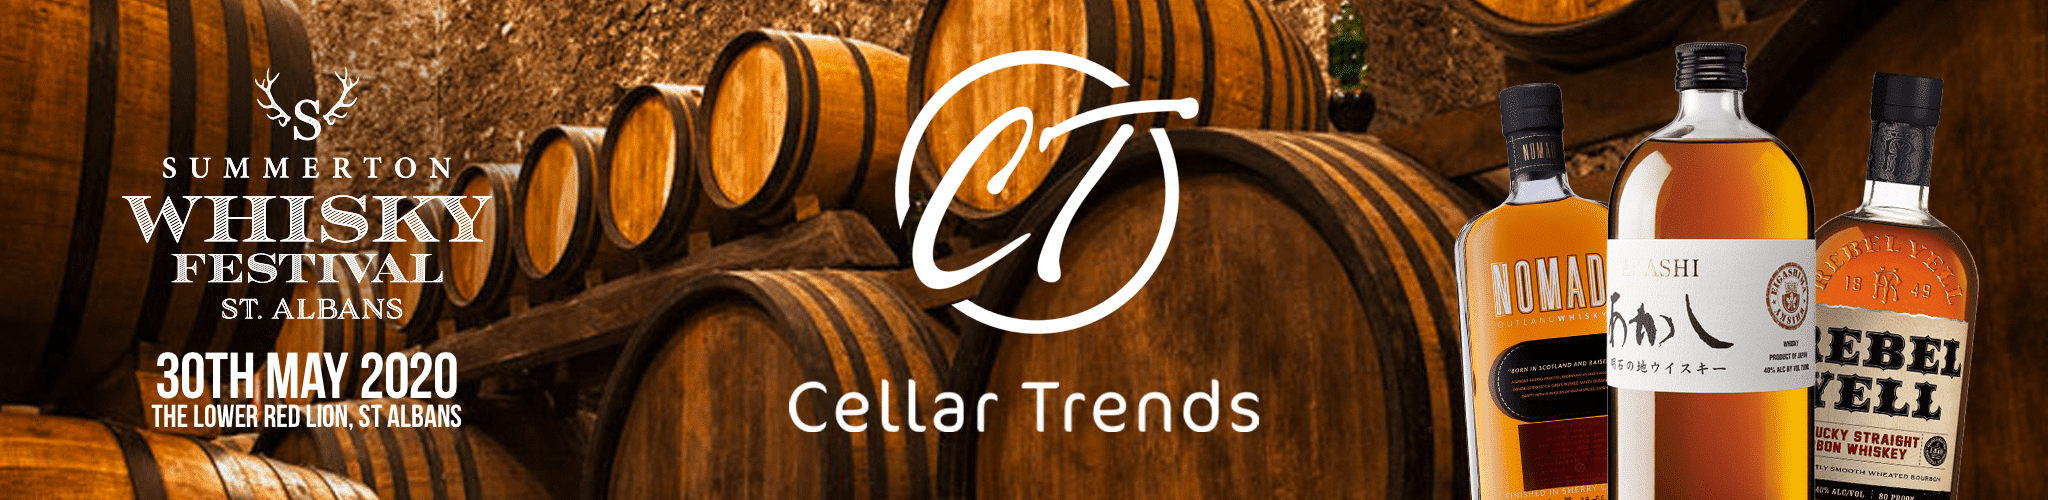 SWF-BRANDS-CELLARTRENDS